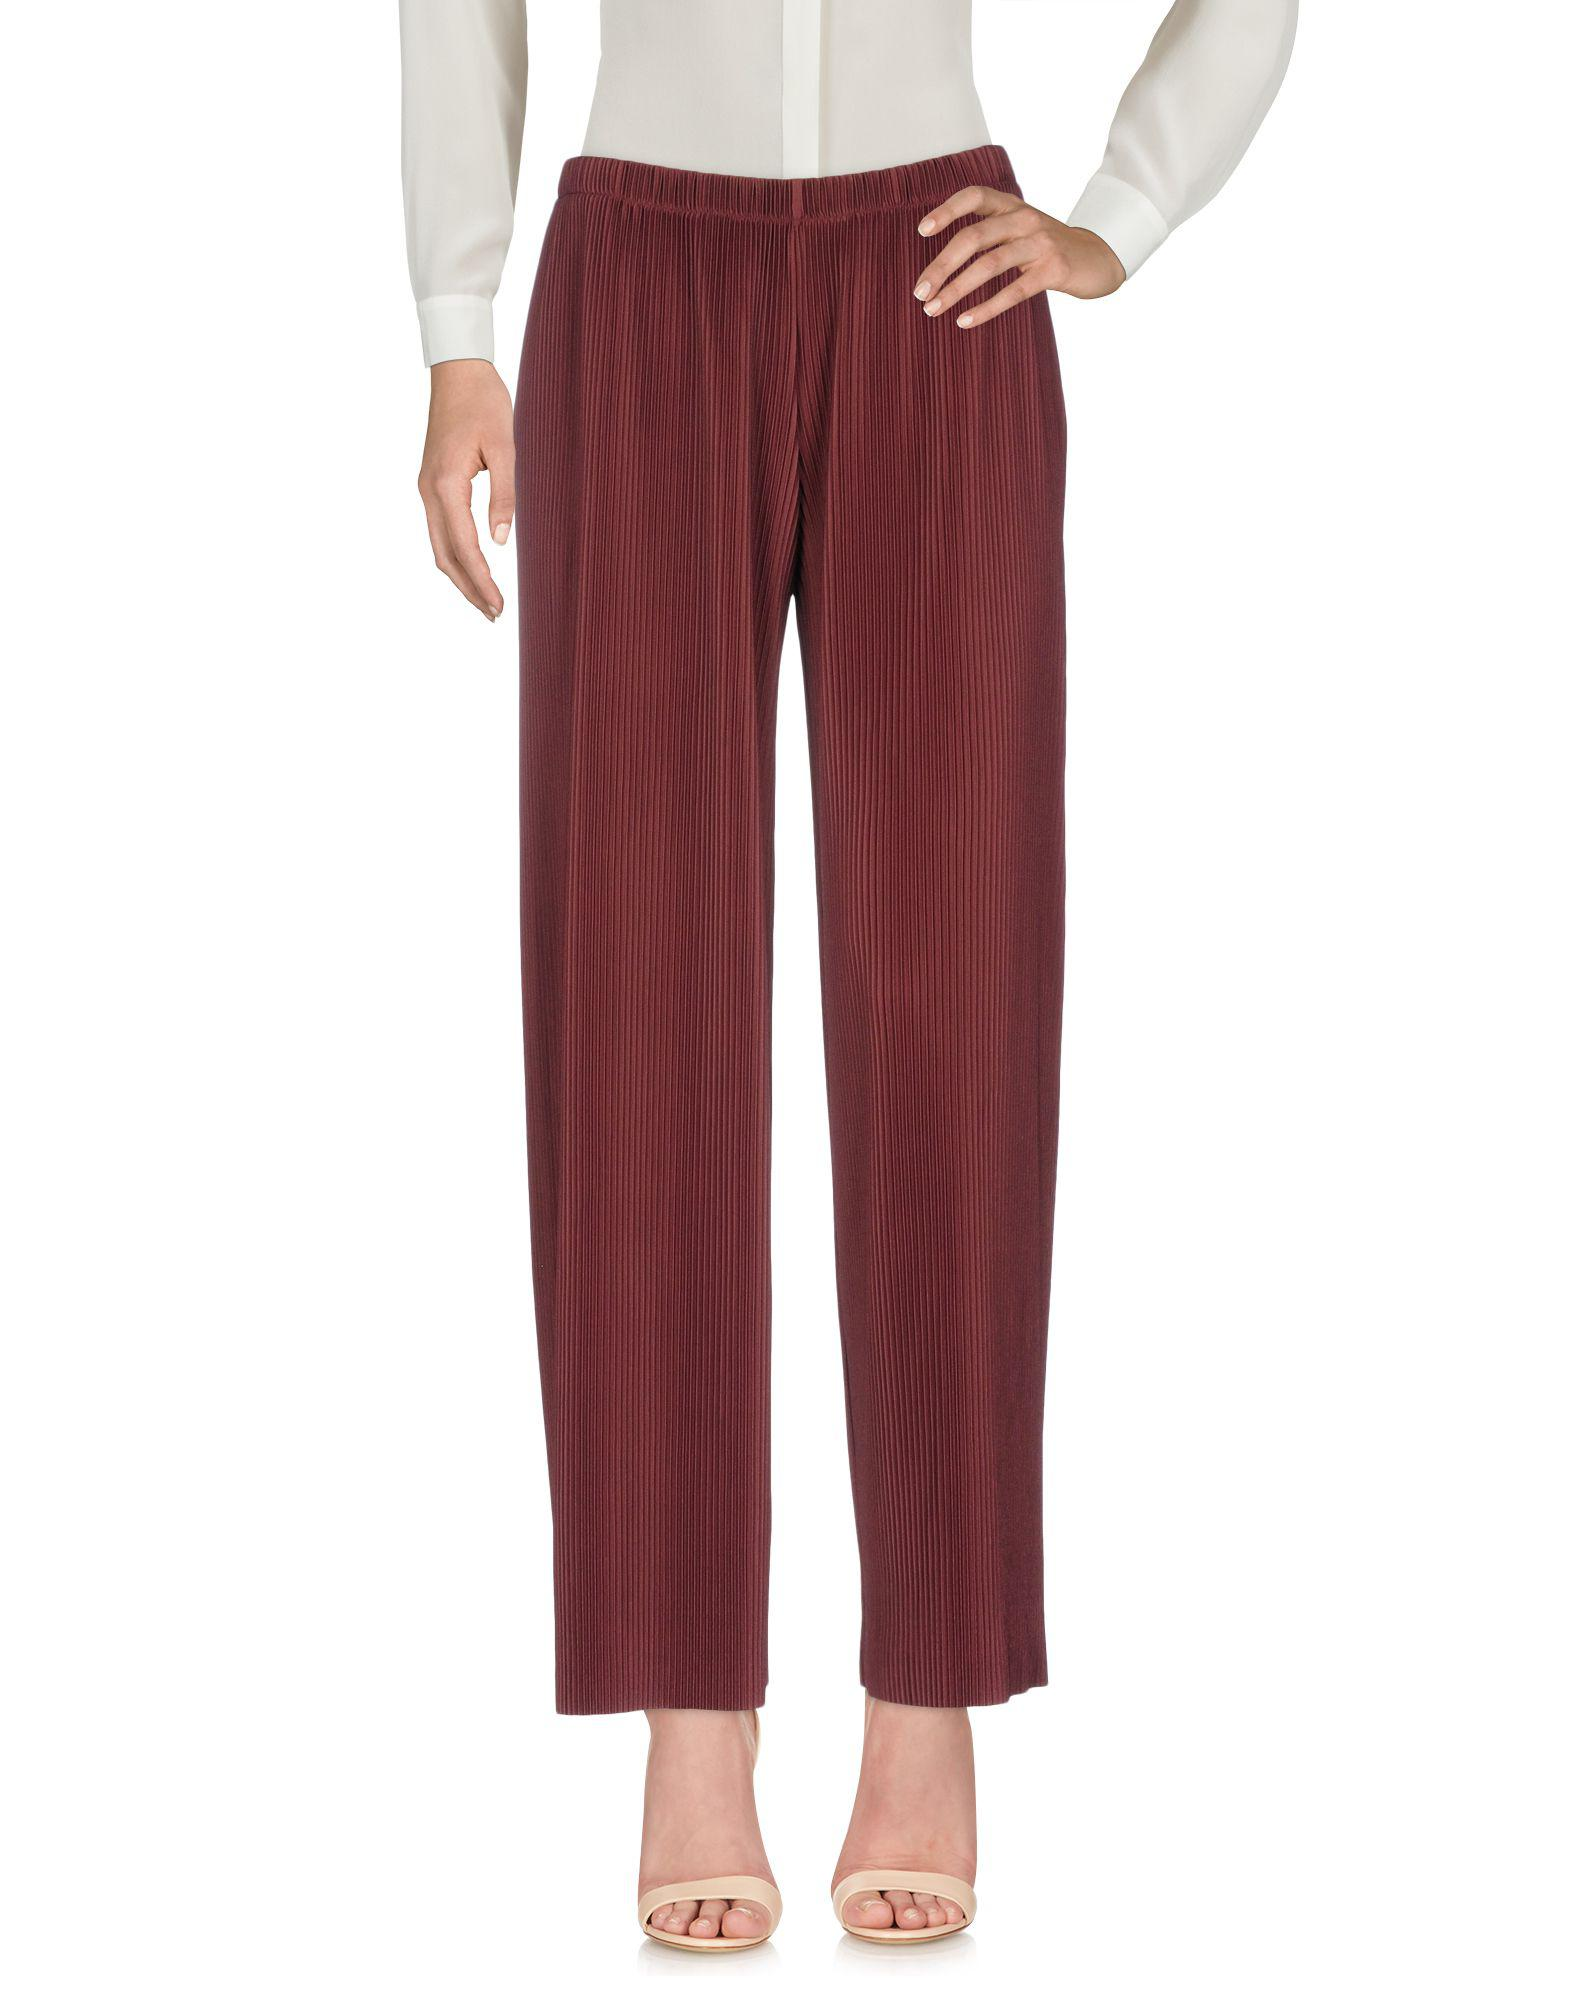 TROUSERS - Casual trousers Just Female ShnkRb4a